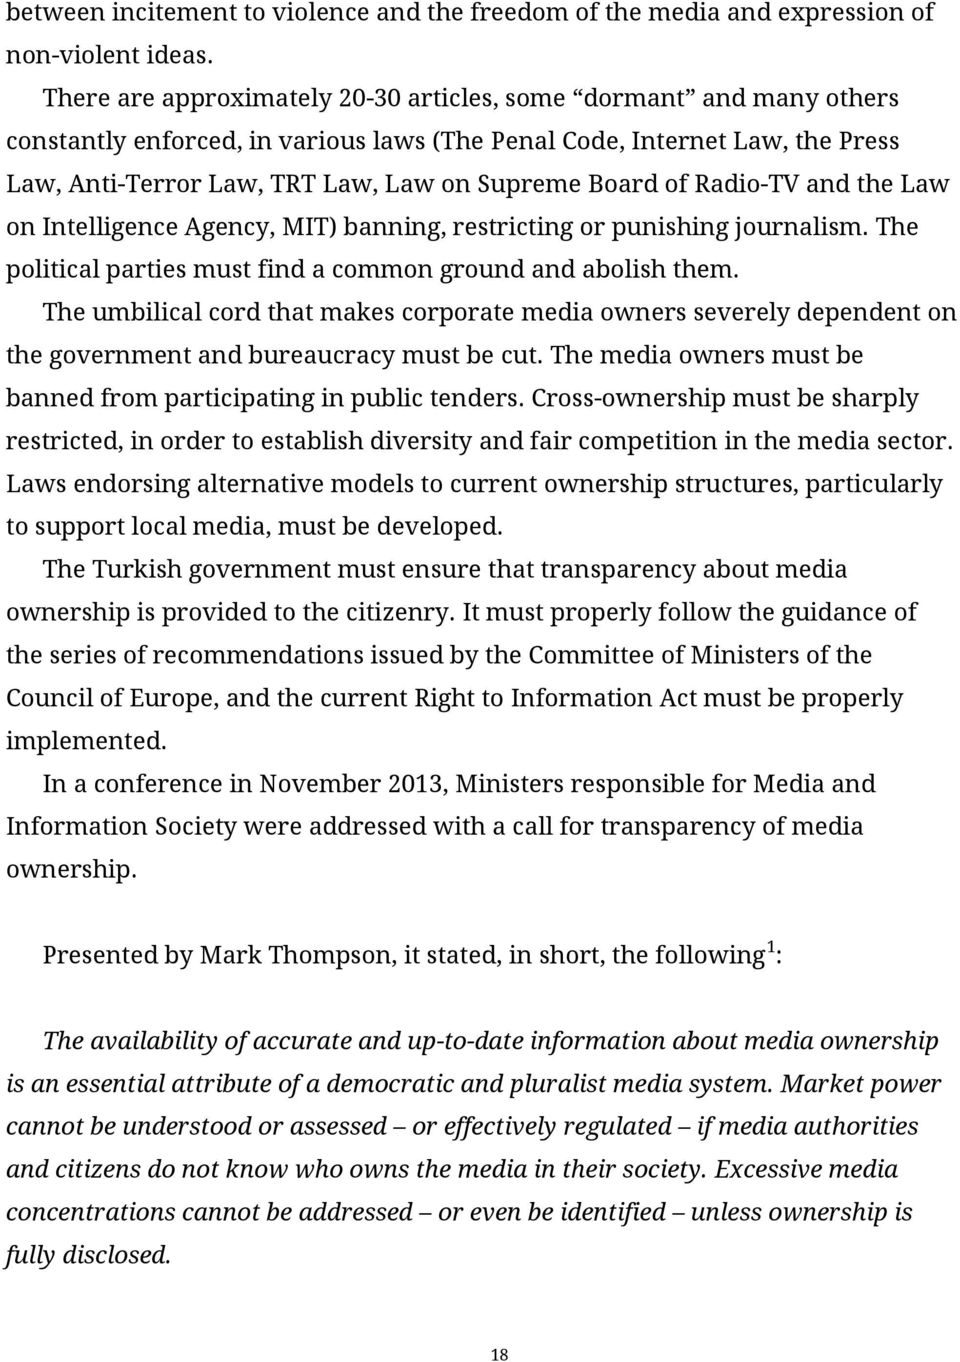 of Radio-TV and the Law on Intelligence Agency, MIT) banning, restricting or punishing journalism. The political parties must find a common ground and abolish them.